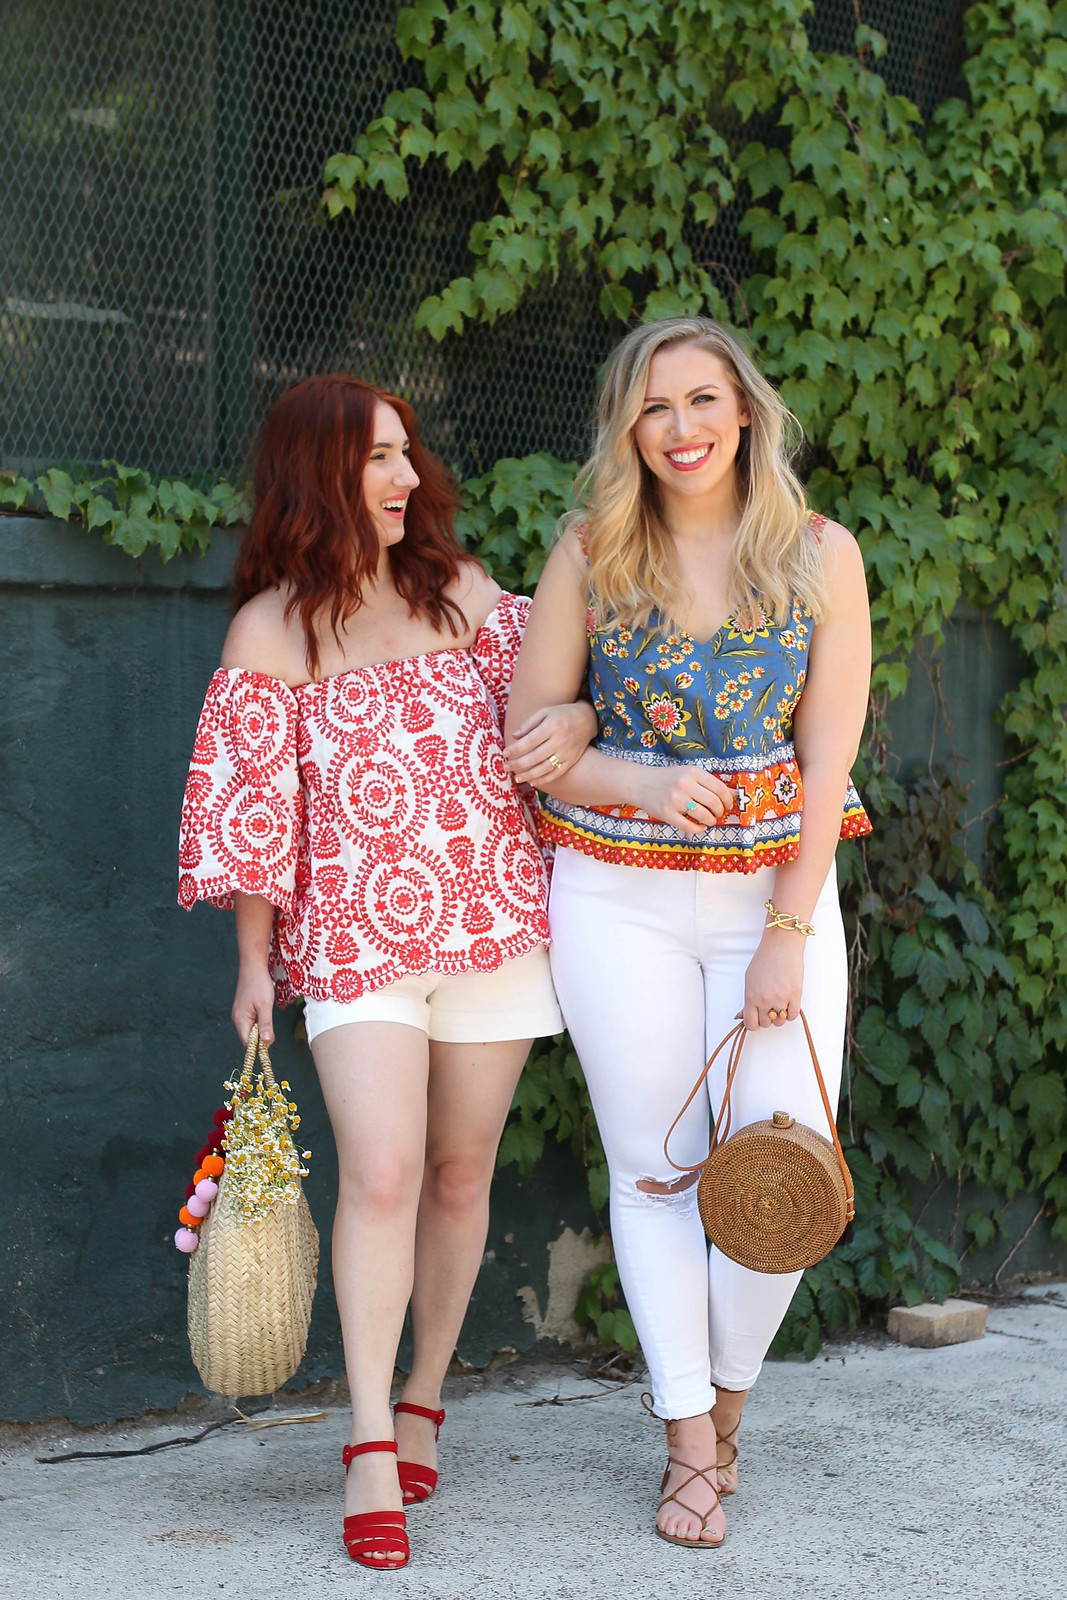 Colorful Summer Blouse White Jeans Straw Bag Outfit Inspiration Summer Style Outfit Inspiration